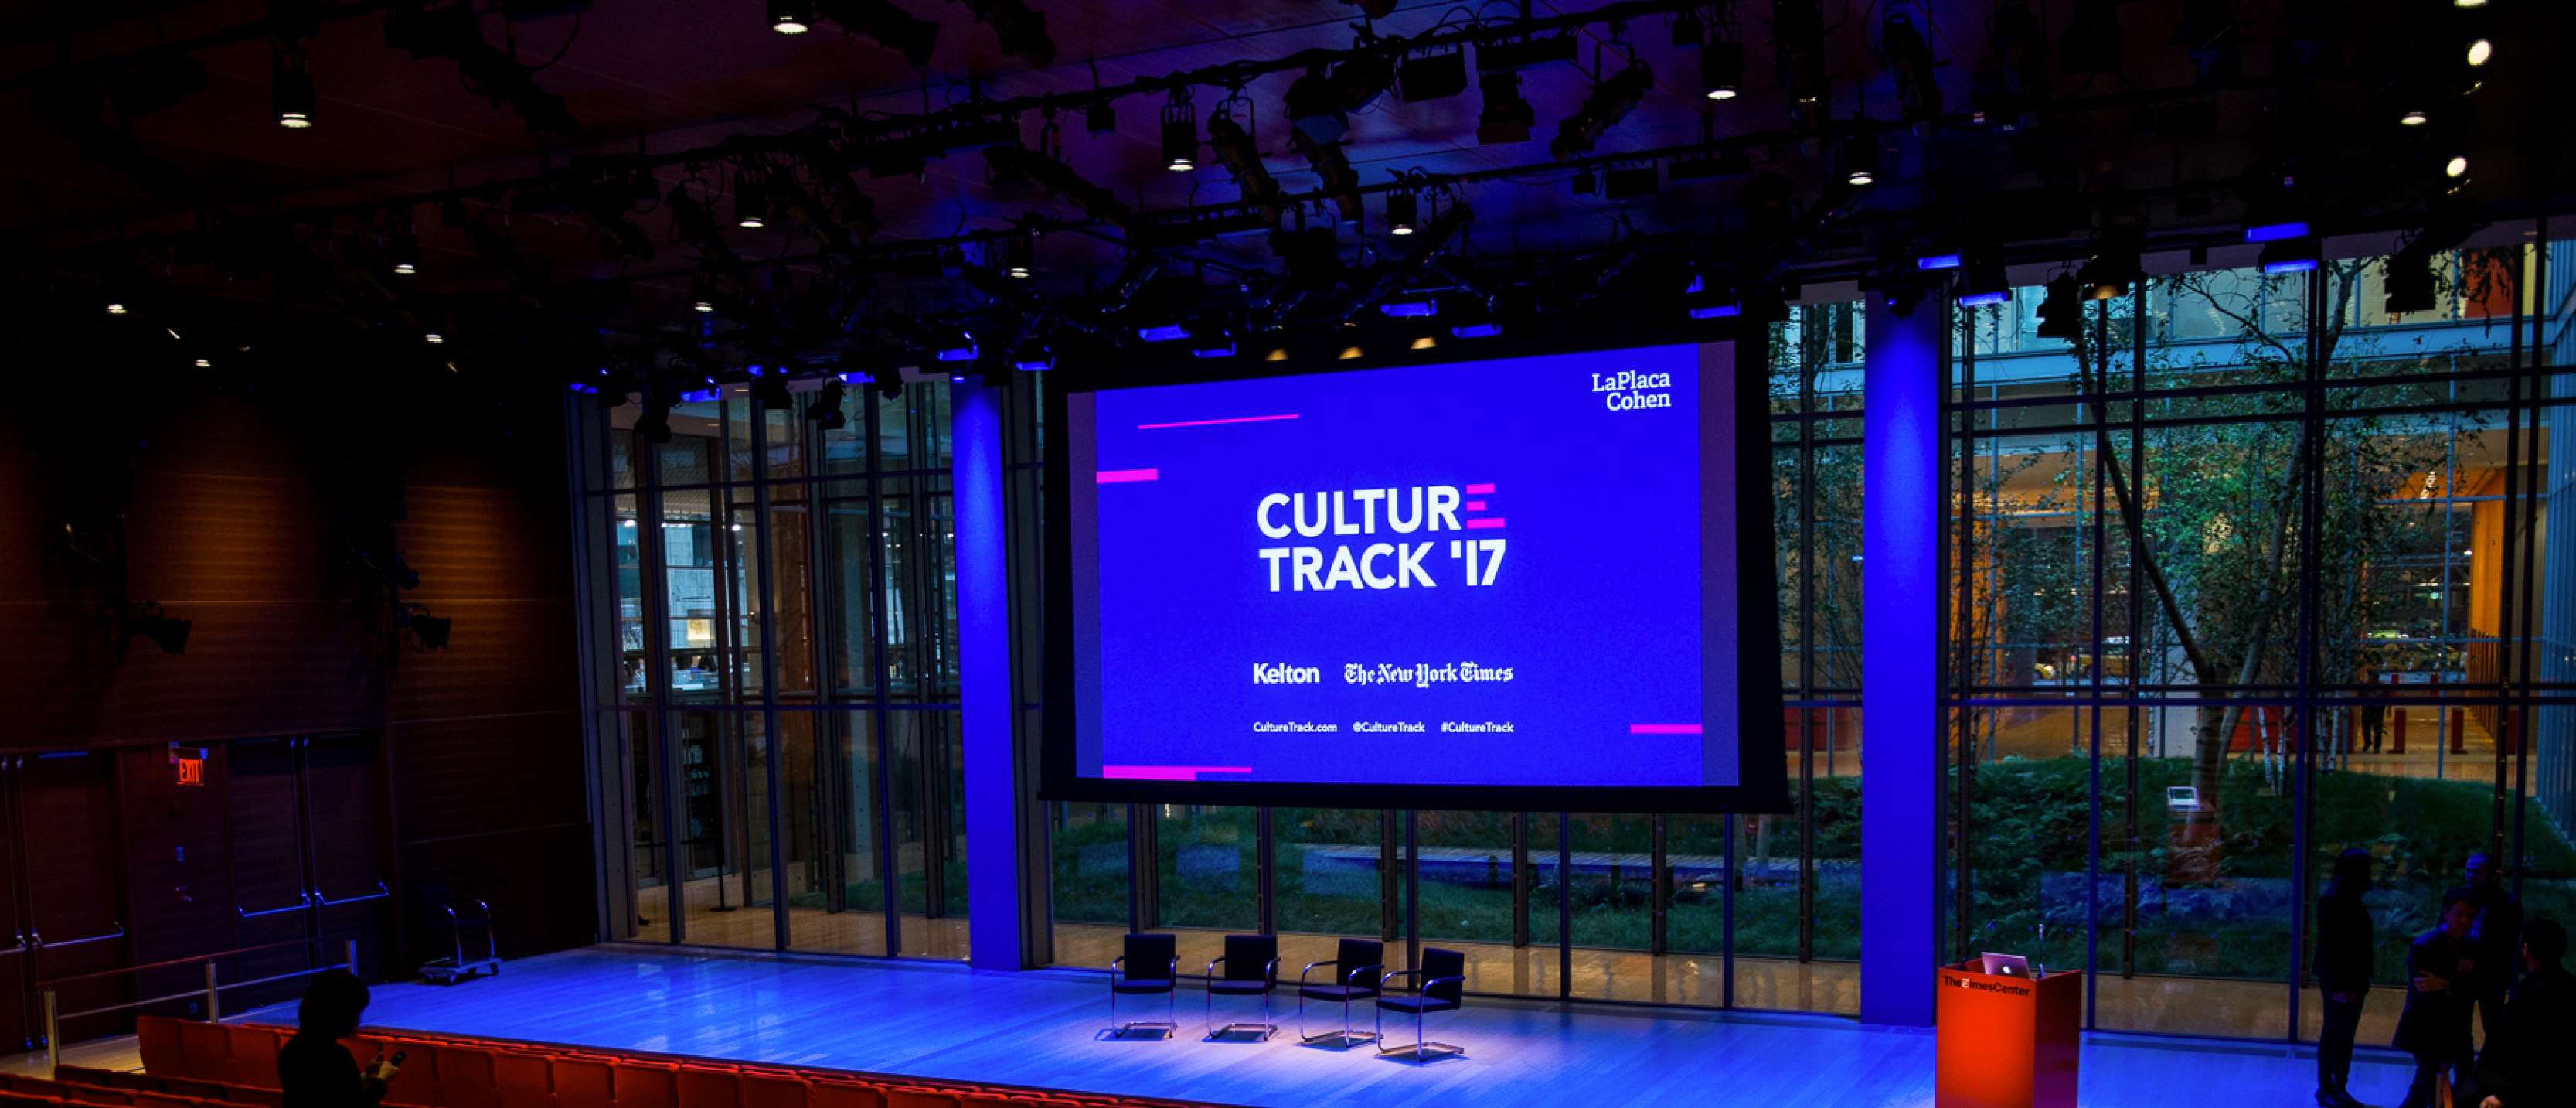 Culture Research Study for Culture Track 2017